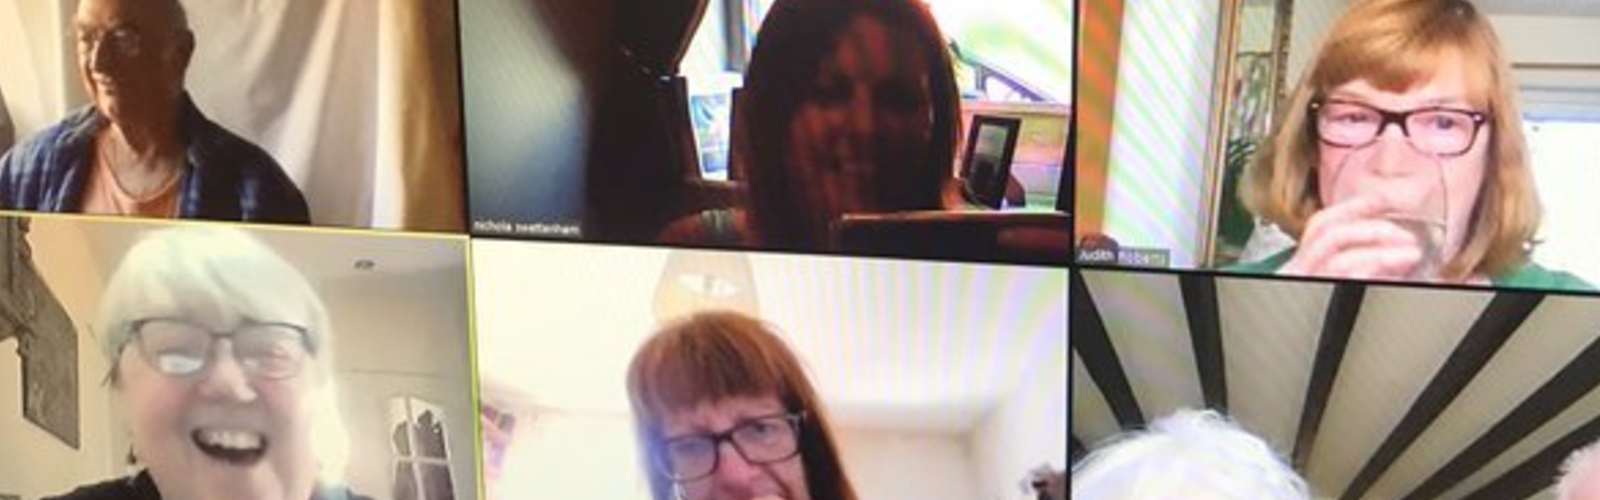 A group of older people speaking on a video call